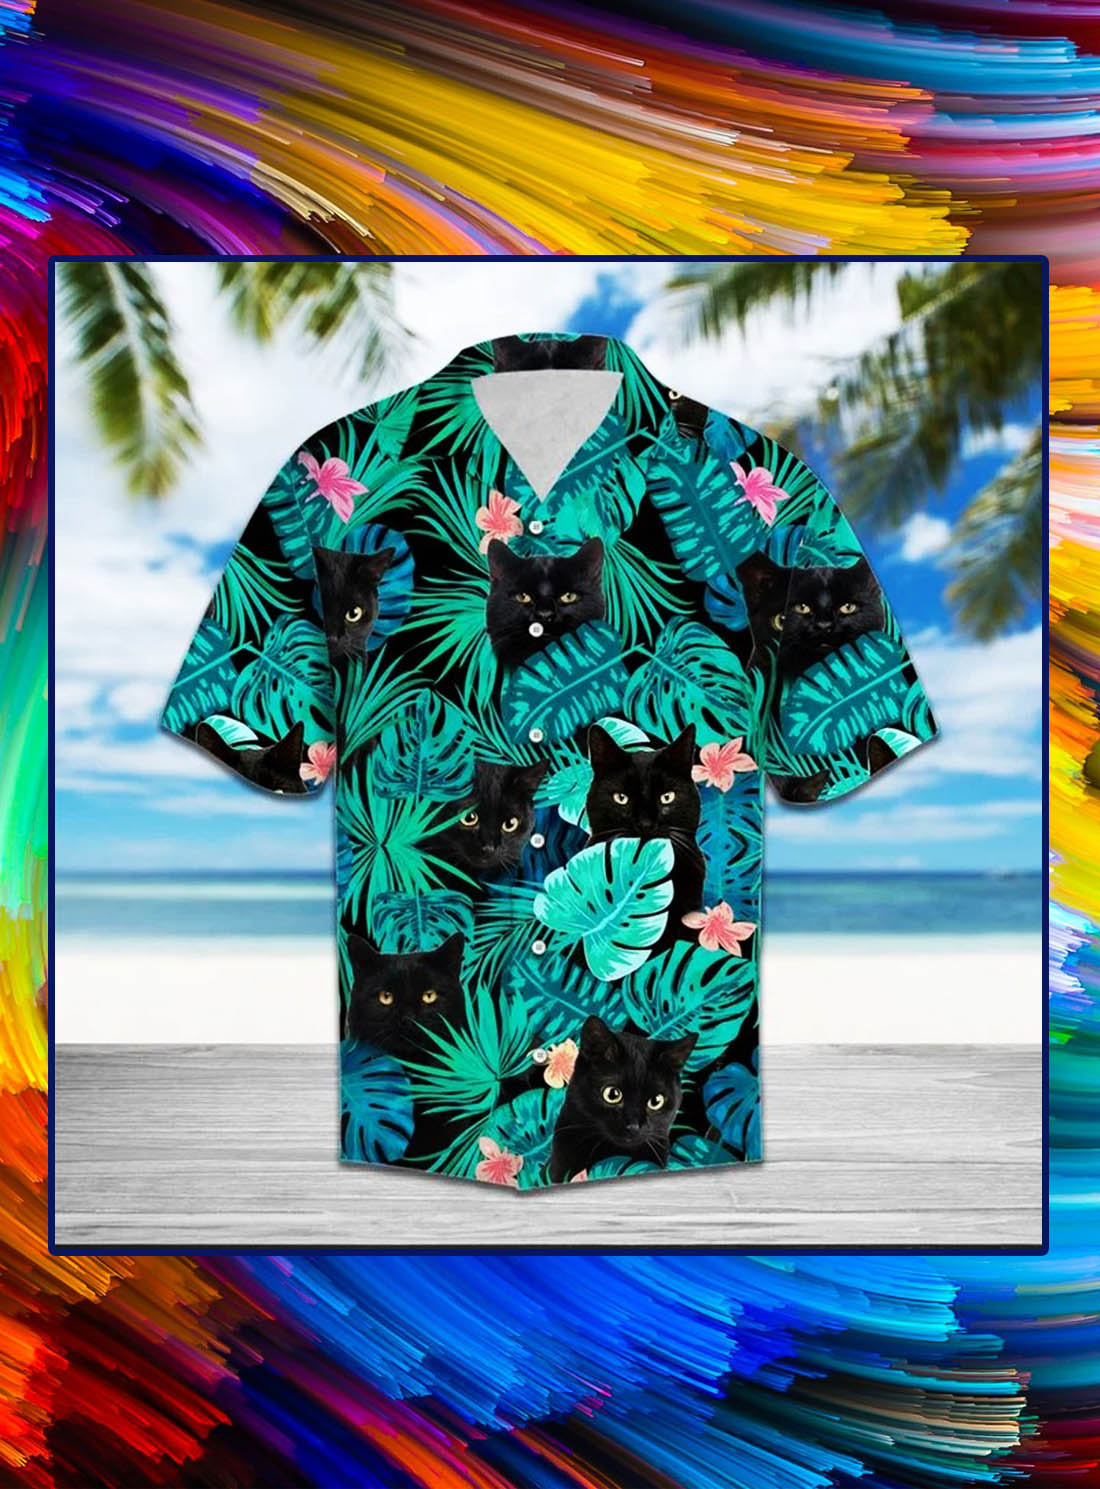 Tropical black cat hawaii shirt - Picture 1